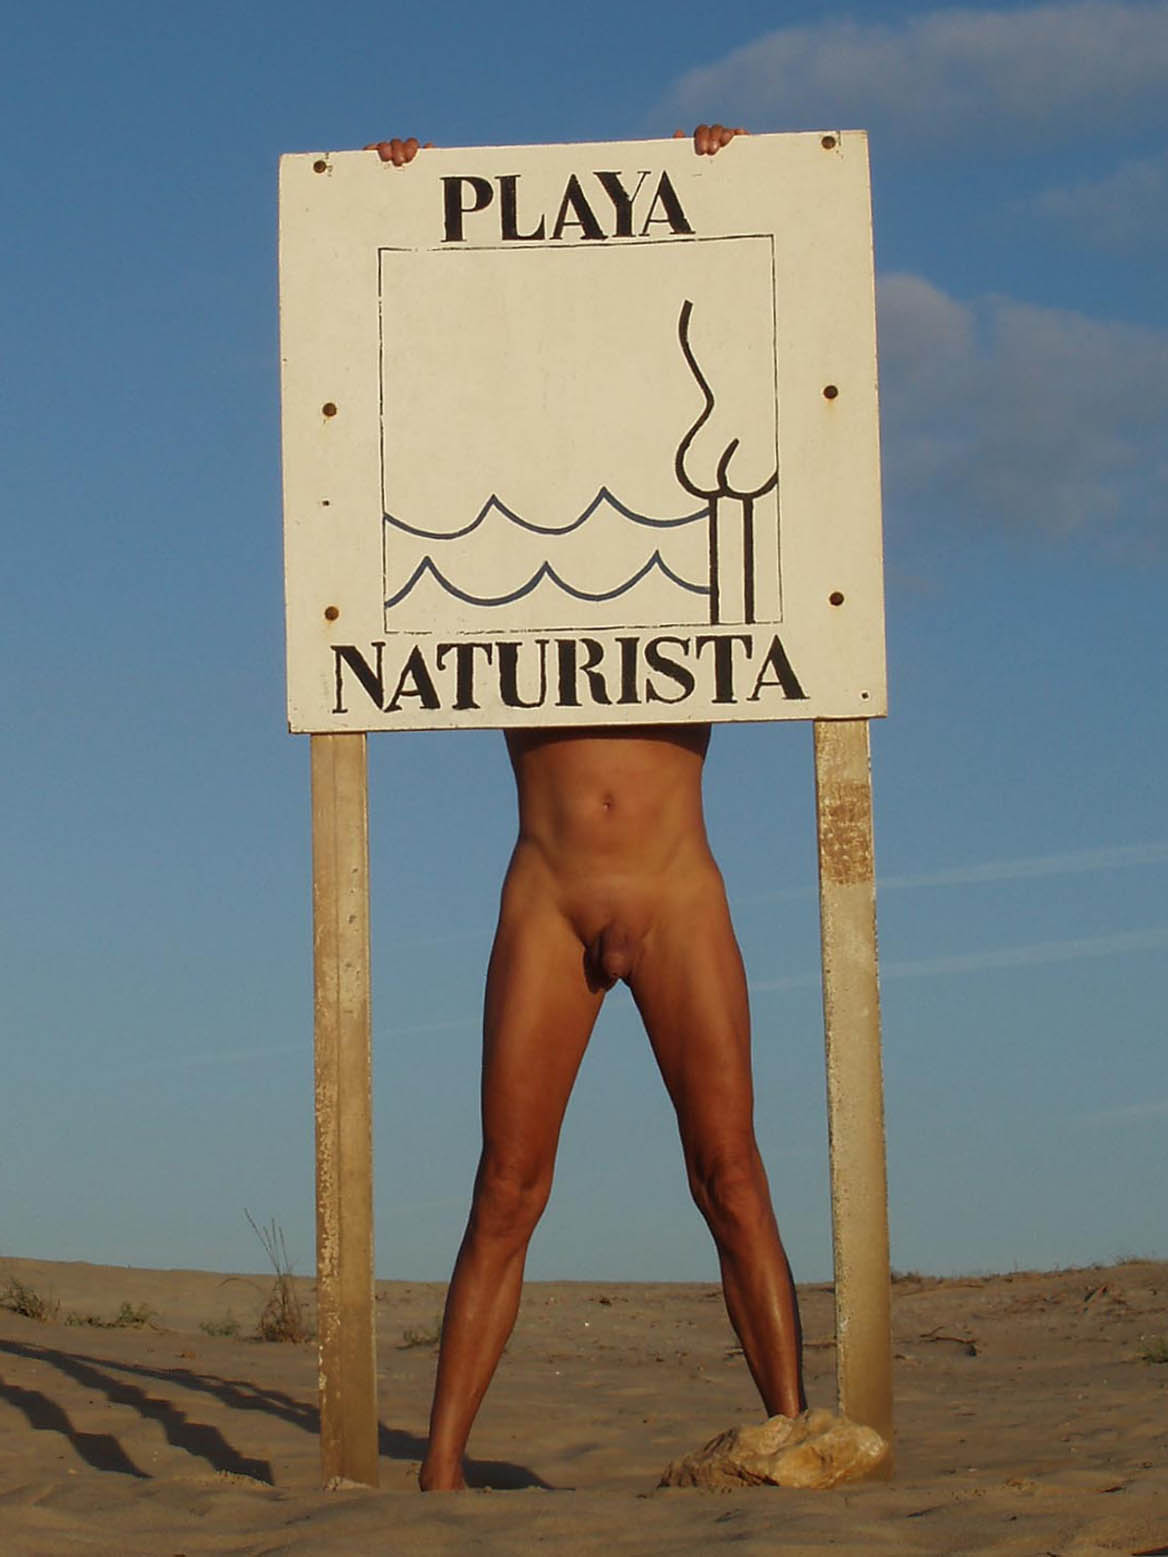 Have Wisconsin nude beaches